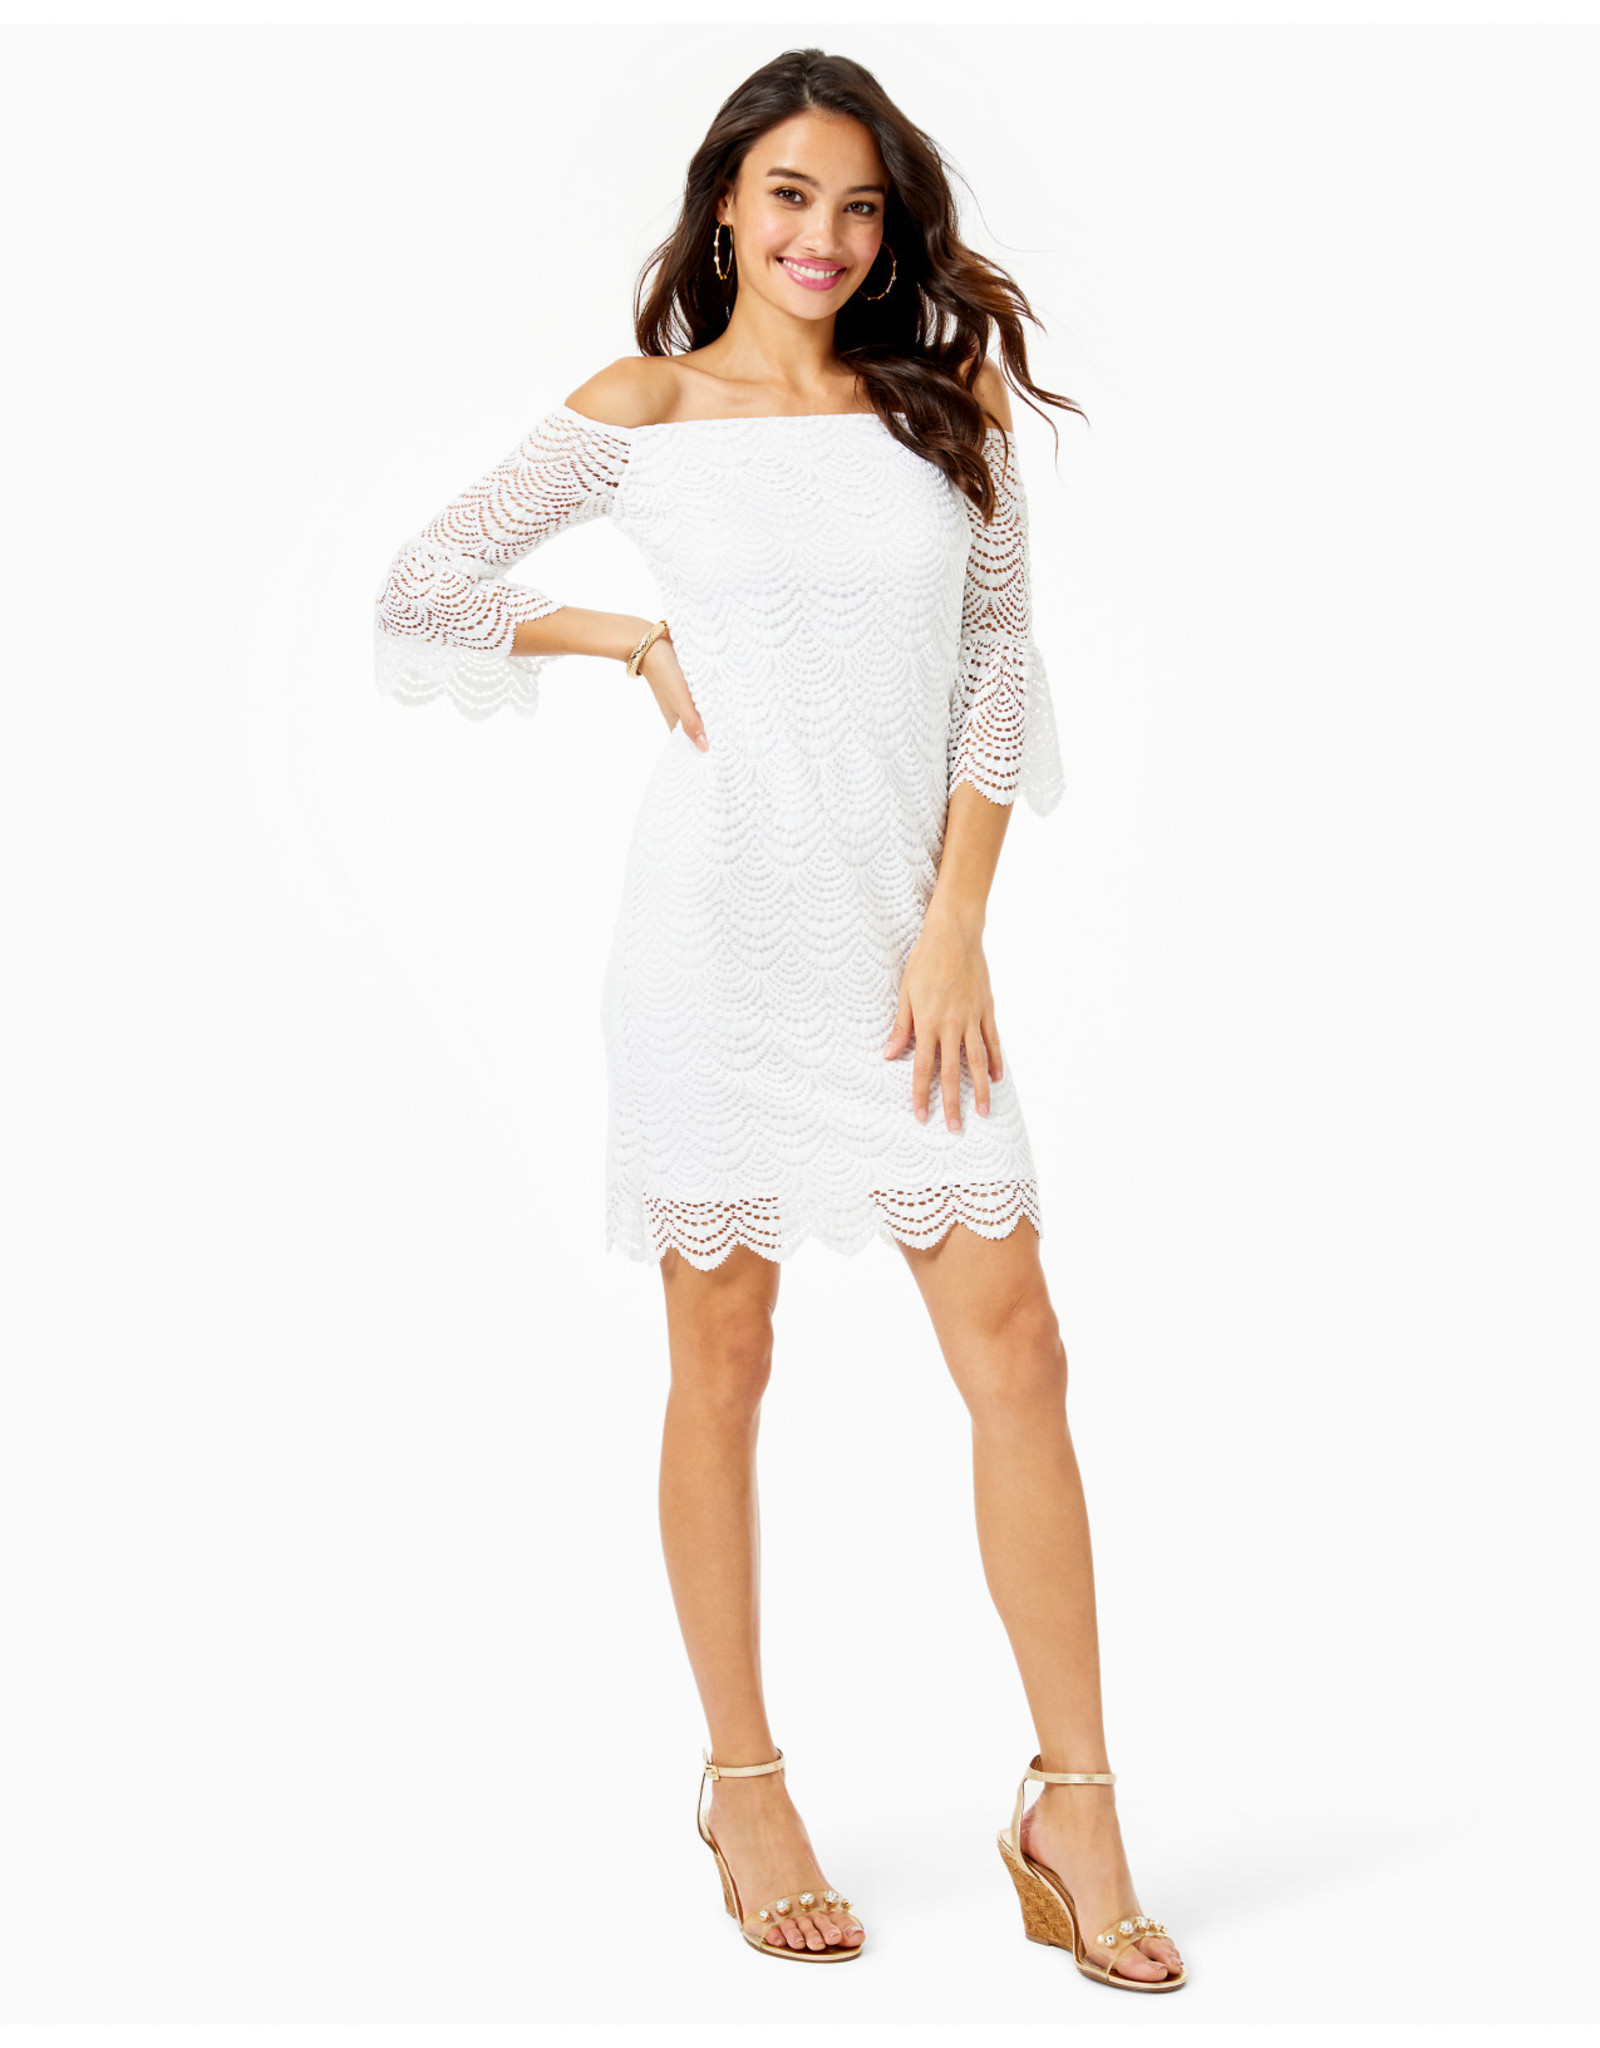 Lilly Pulitzer Lexa Dress